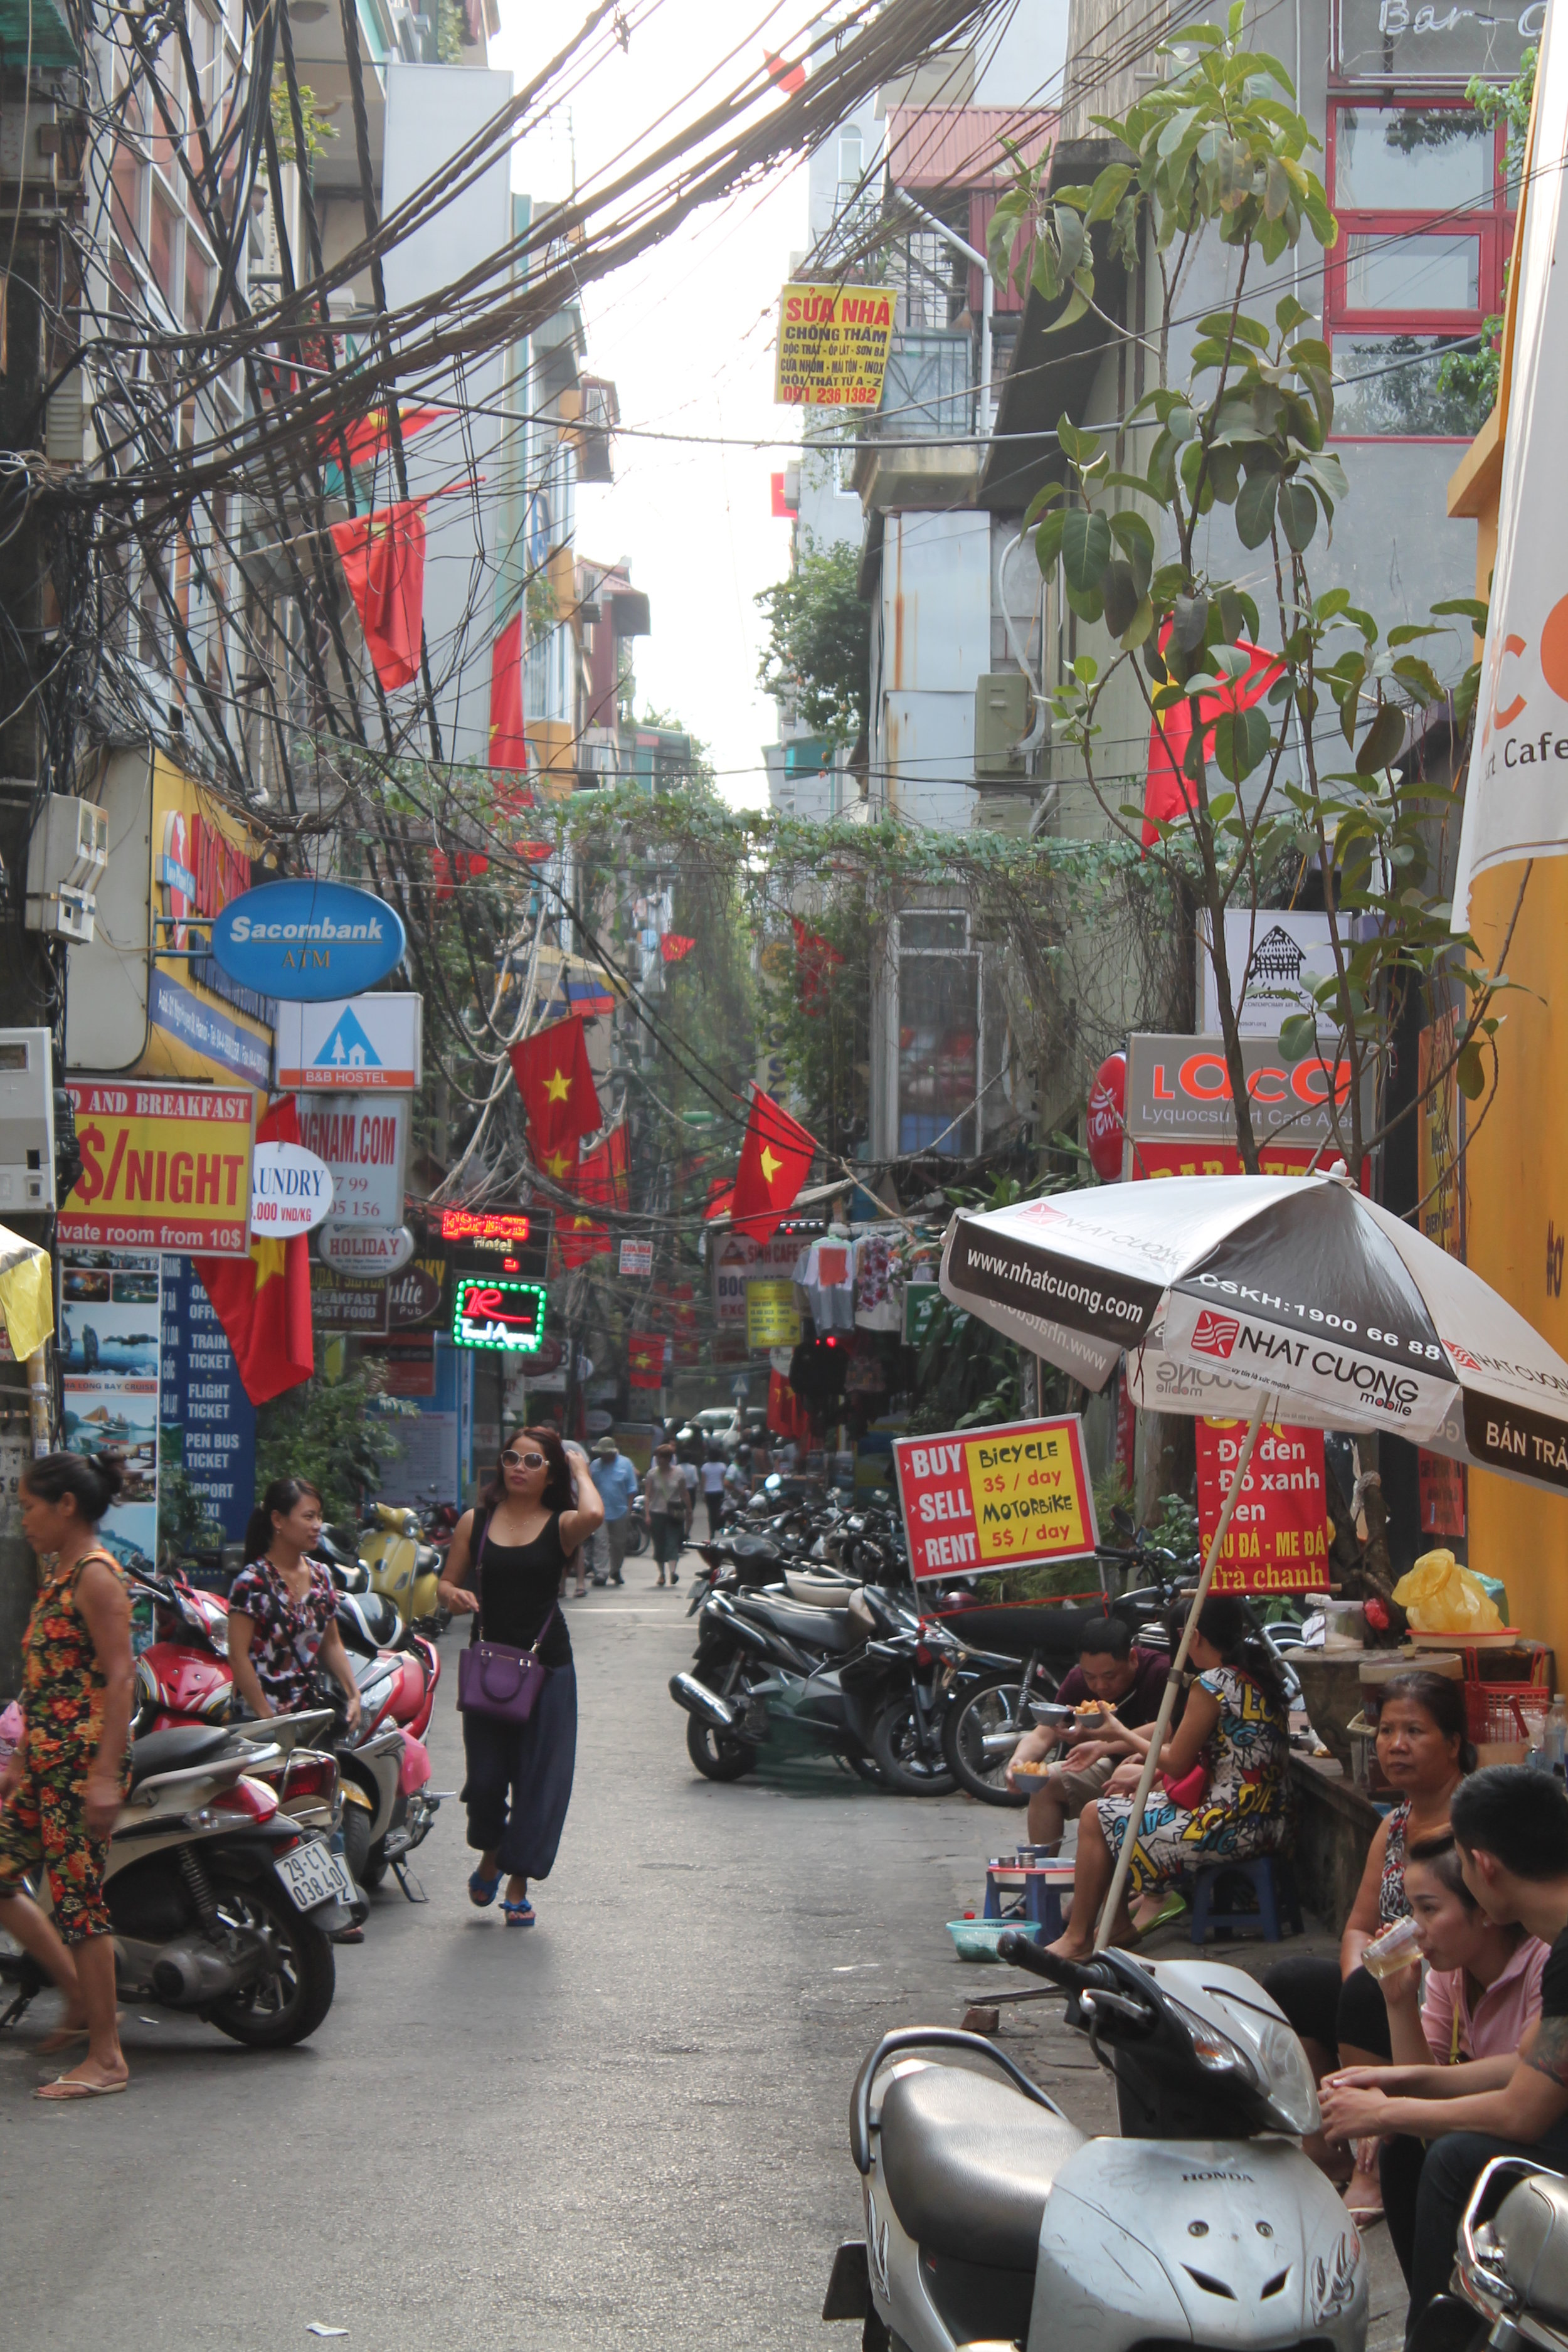 Crowded, but clean. Typical street view in the Old Quarter, Hanoi.